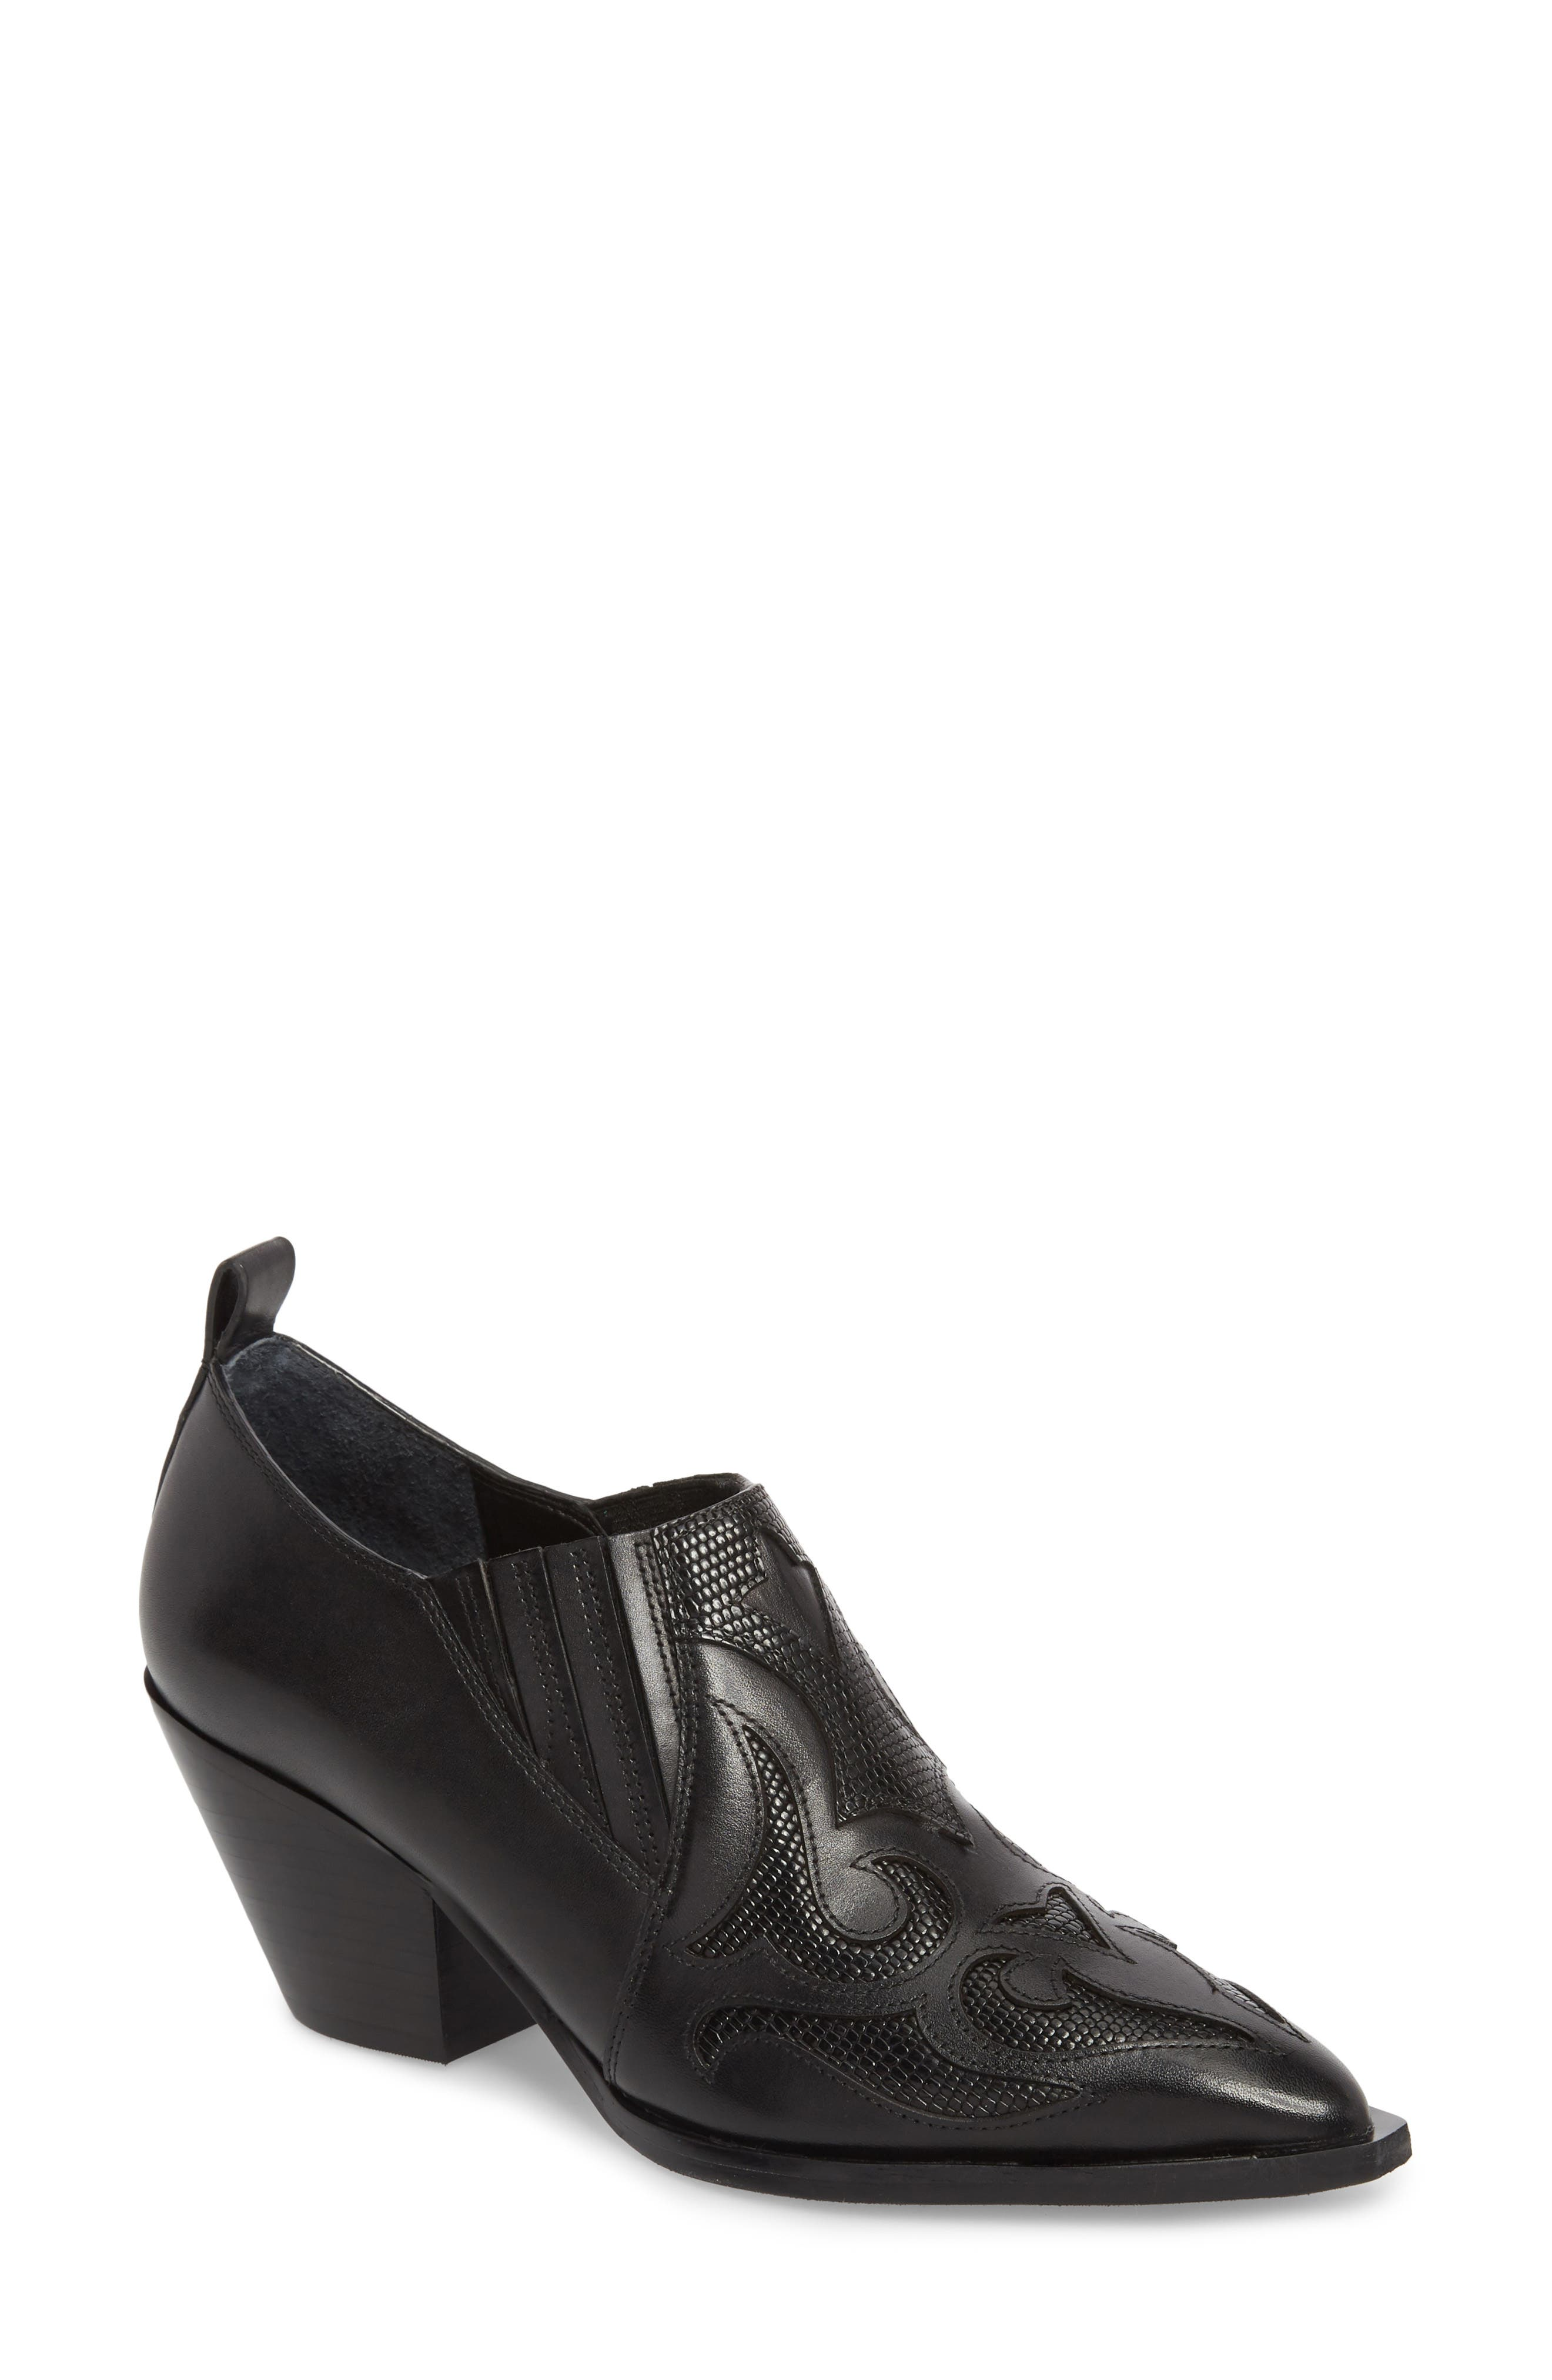 MARC FISHER LTD Charly Western Bootie, Main, color, 001